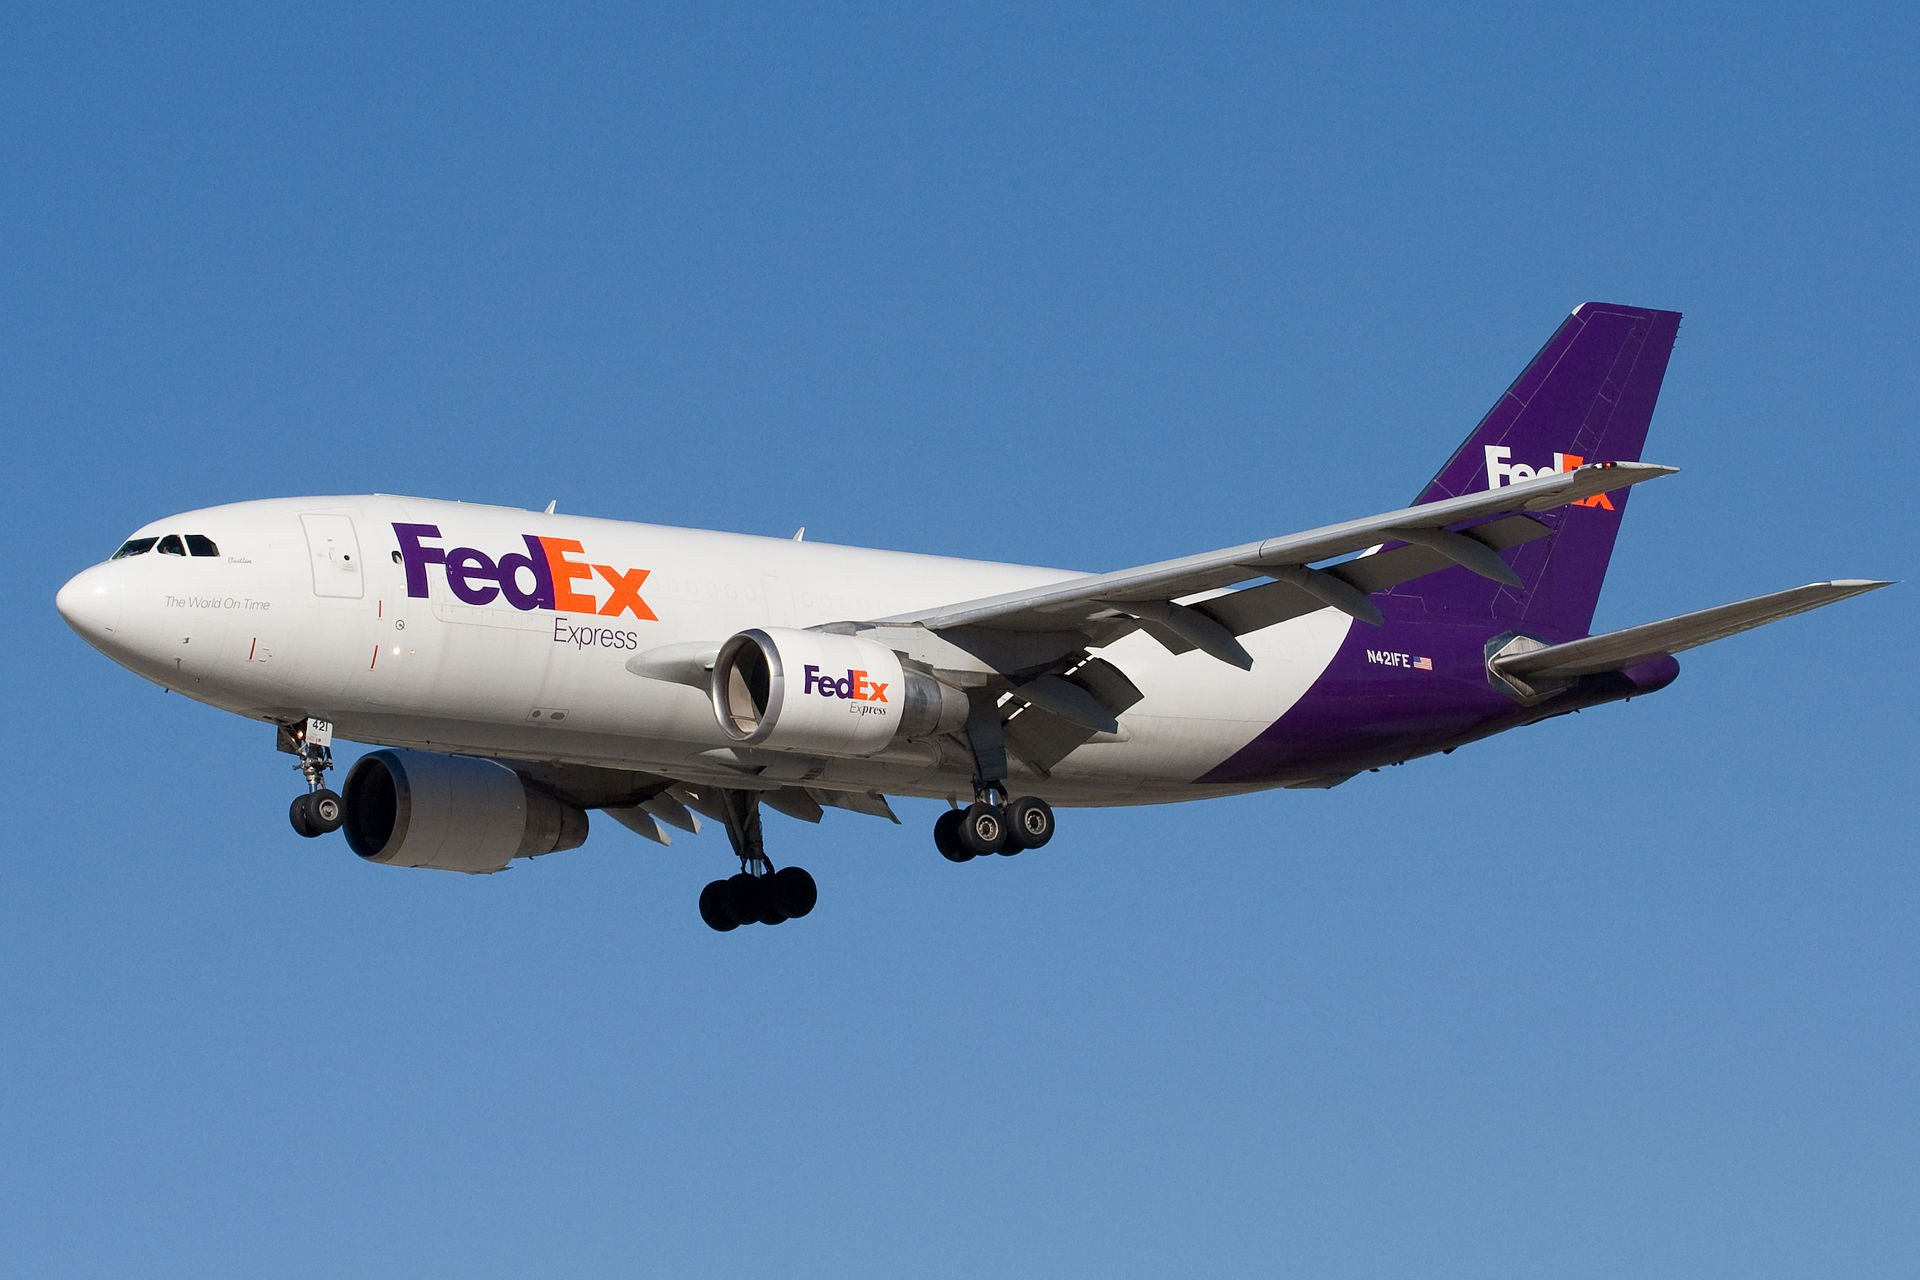 FedEx ends US air delivery service contract with Amazon